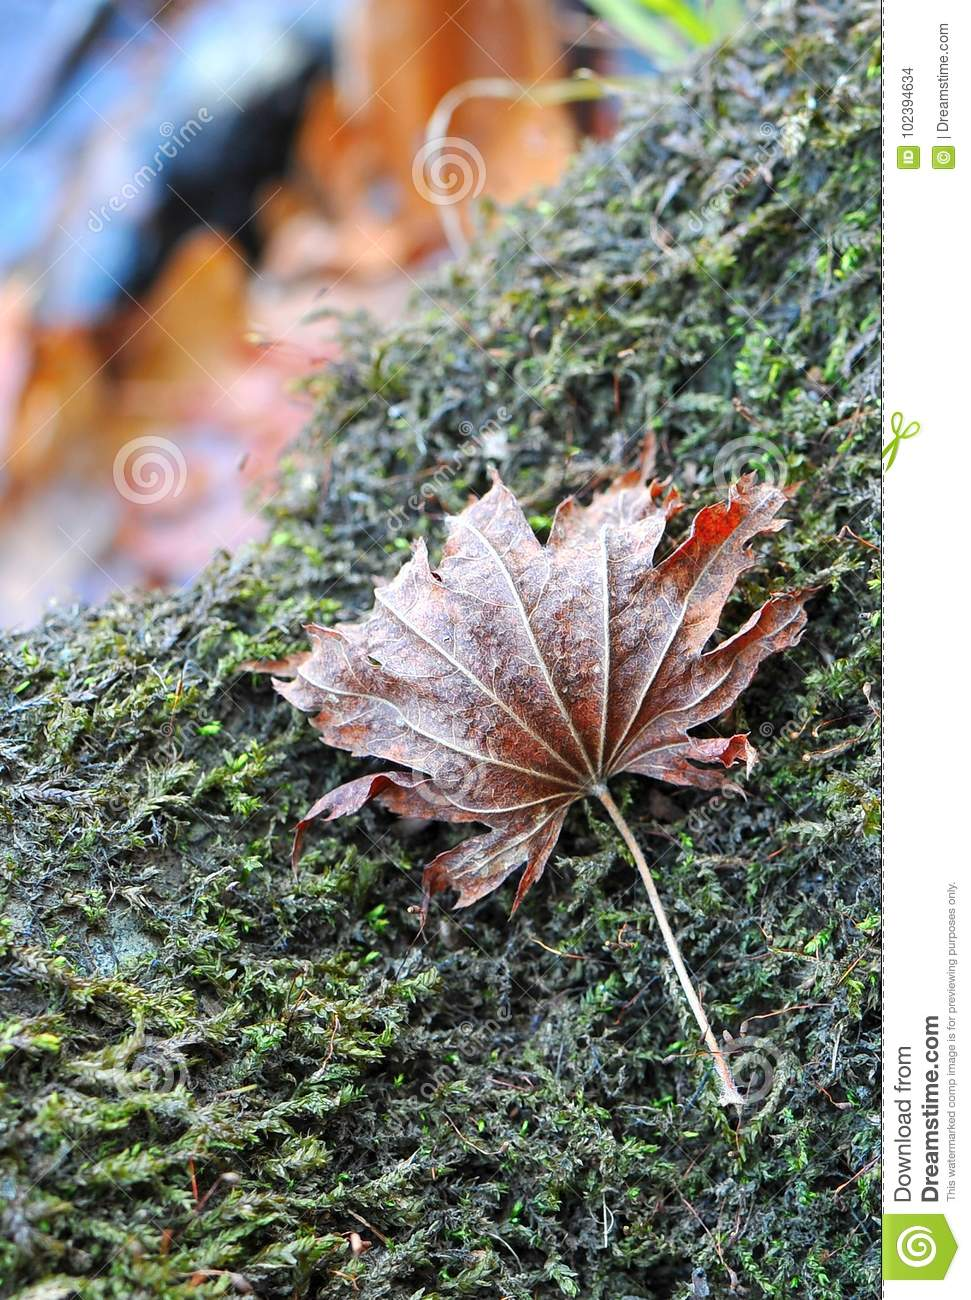 The Autumn Red Maple Leaf Lies On The Stone With Green Moss